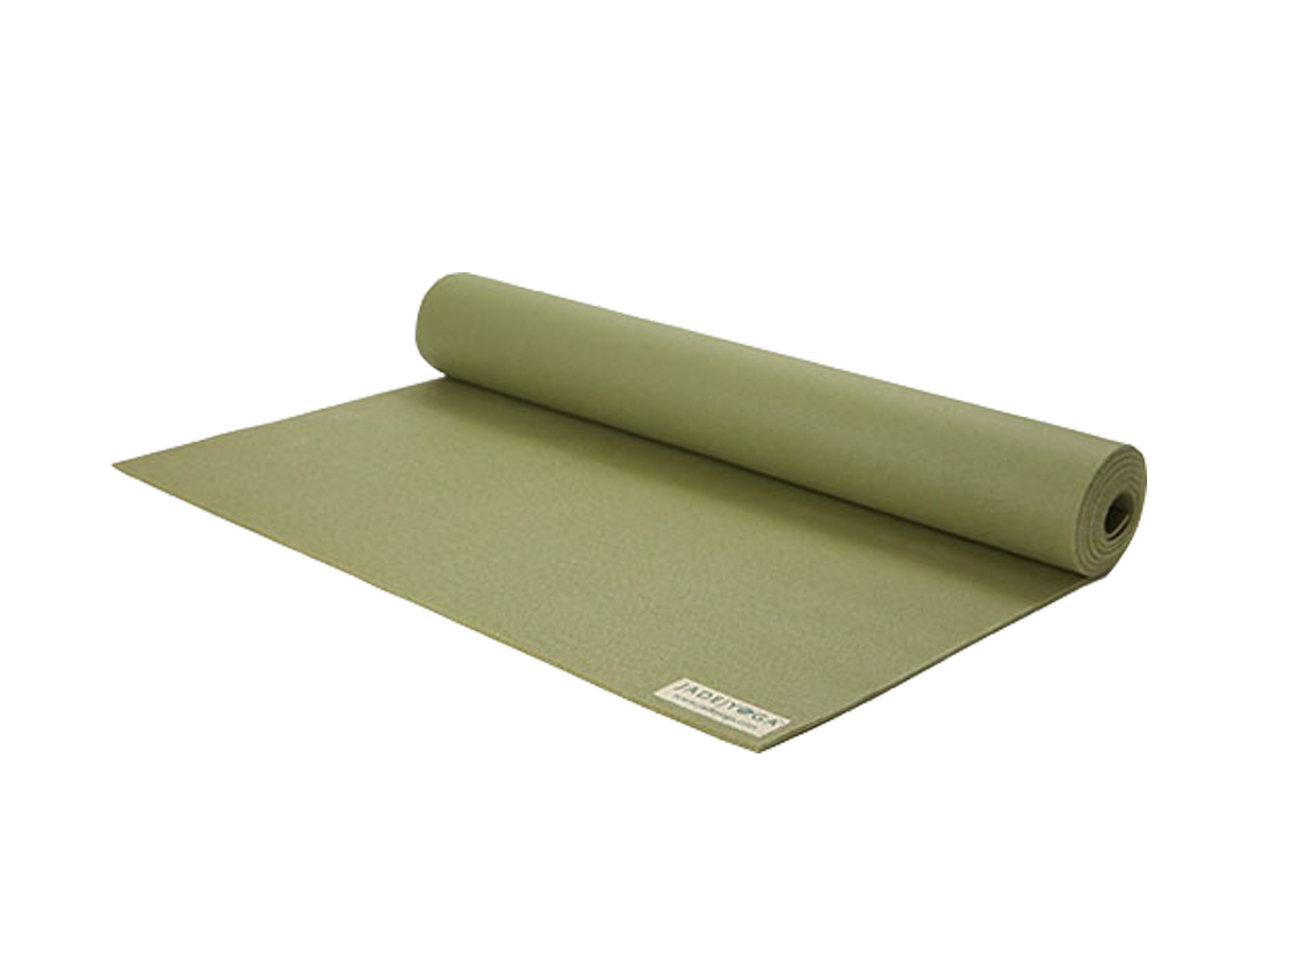 jade-travel-yoga-mat-TRVLFIT0816.jpg